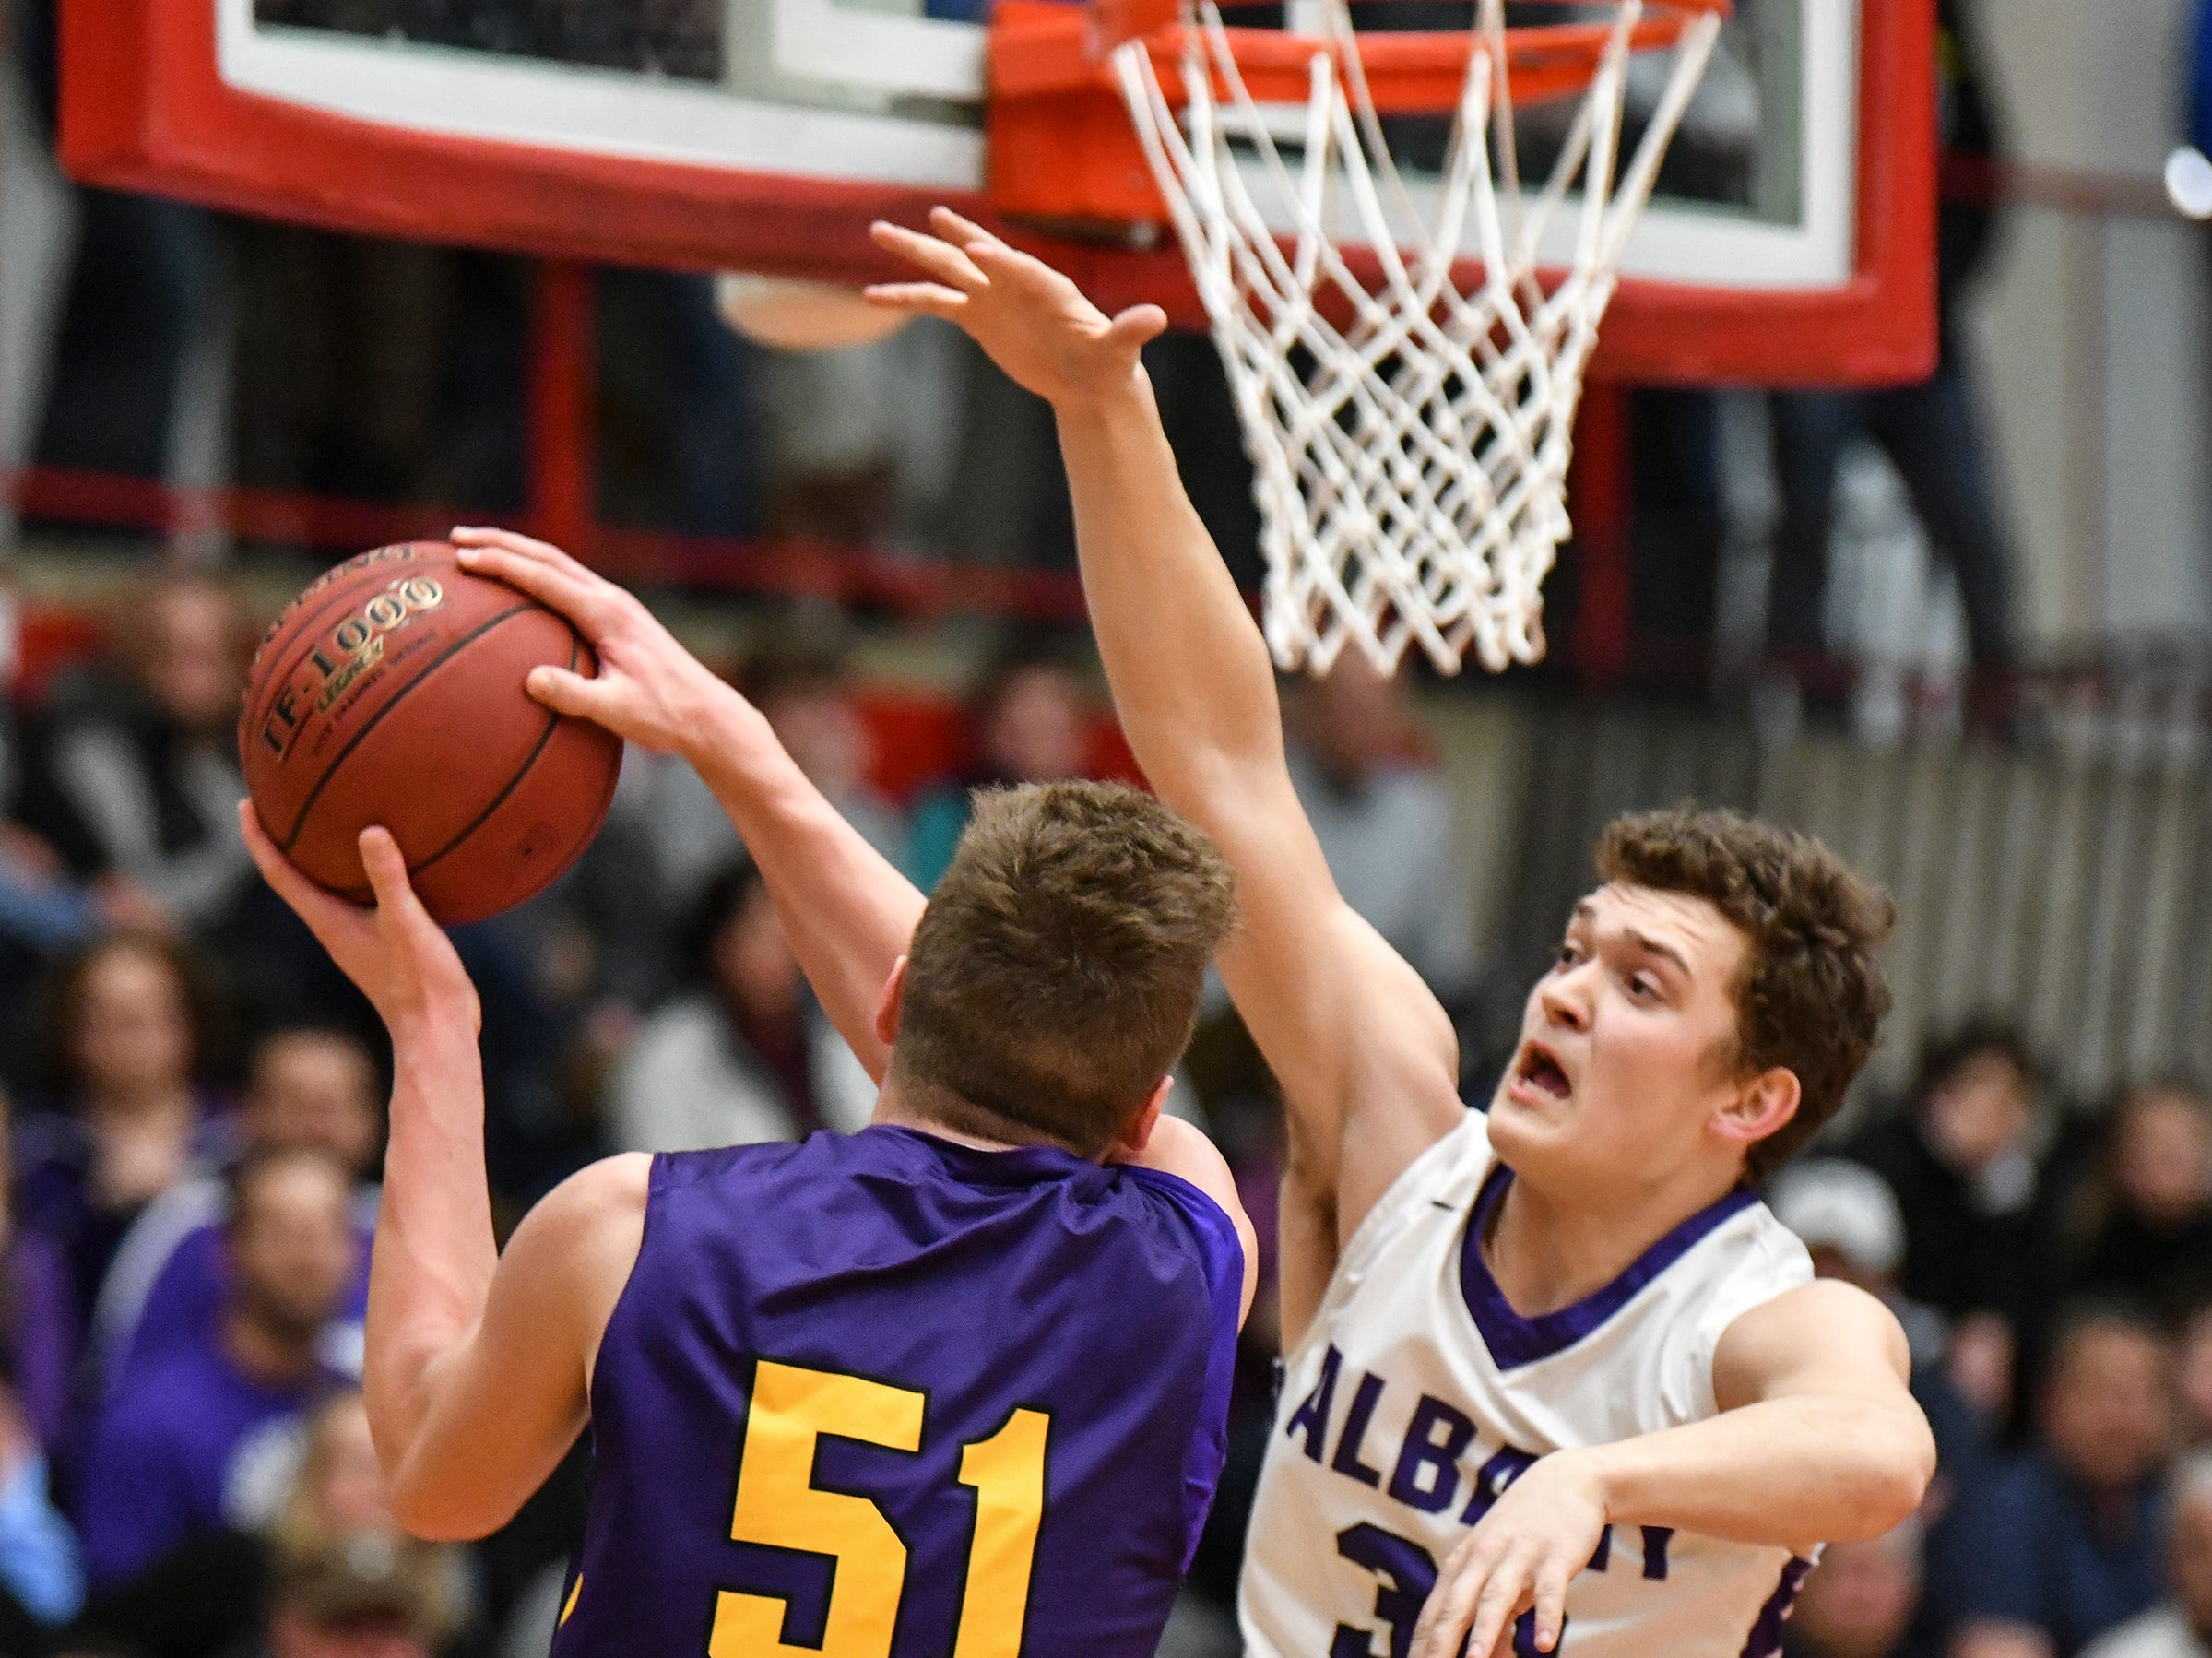 Melrose's Rowan Nelson puts up a shot during the first half of the Friday, March 15, Section 6-2A championship game at Halenbeck Hall in St. Cloud.